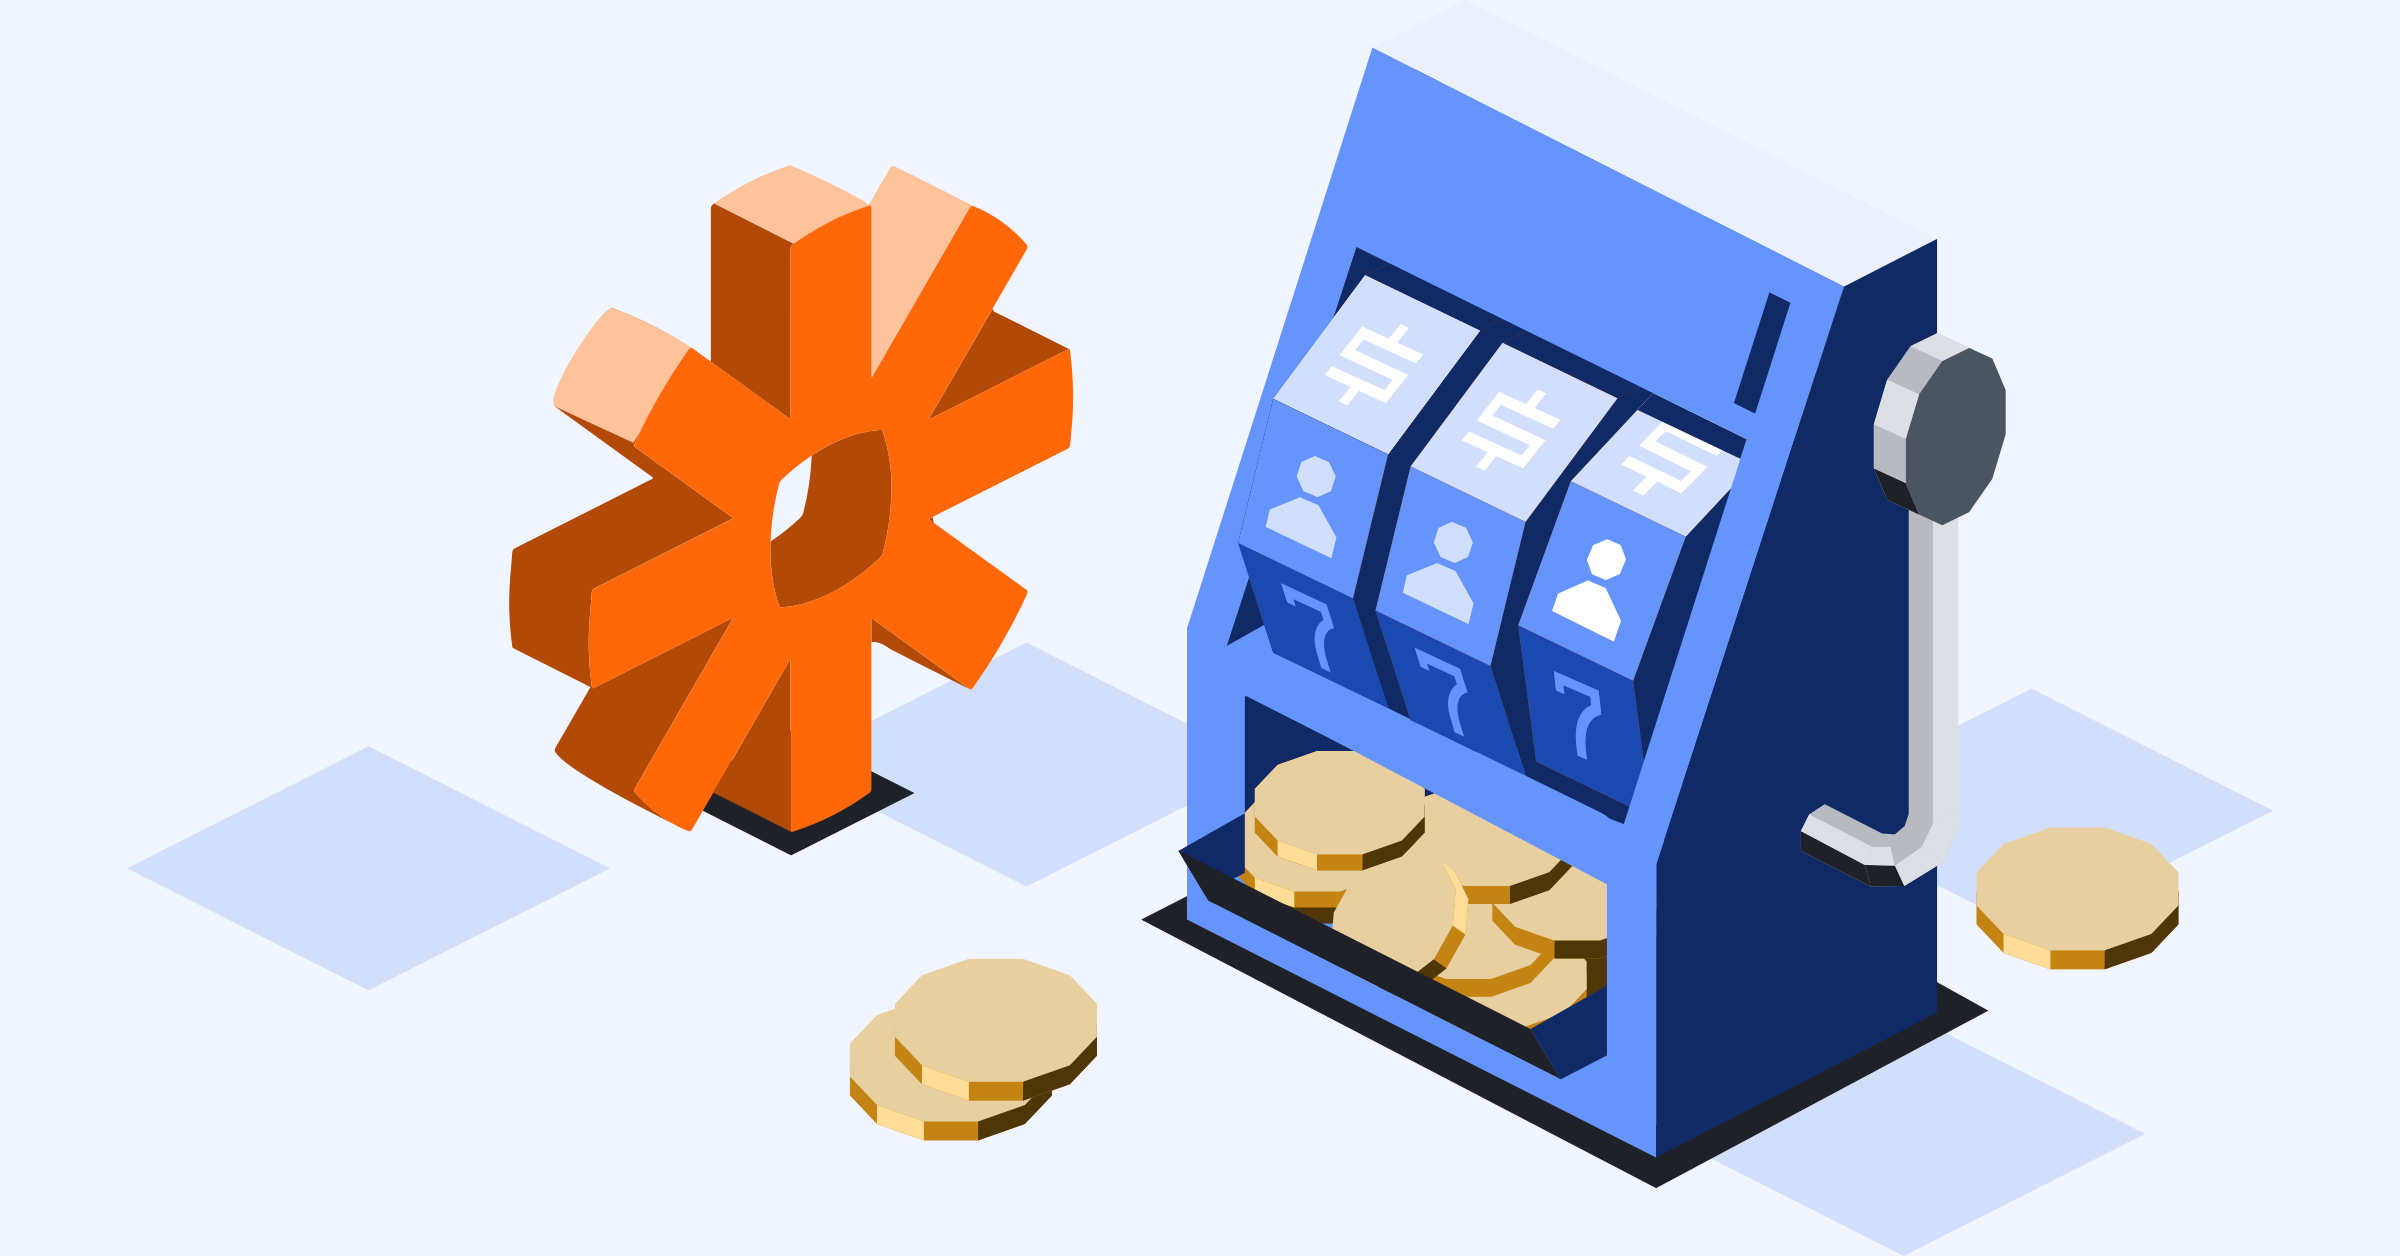 6 Moves That Got Zapier to $140M ARR with $1.4M in Funding